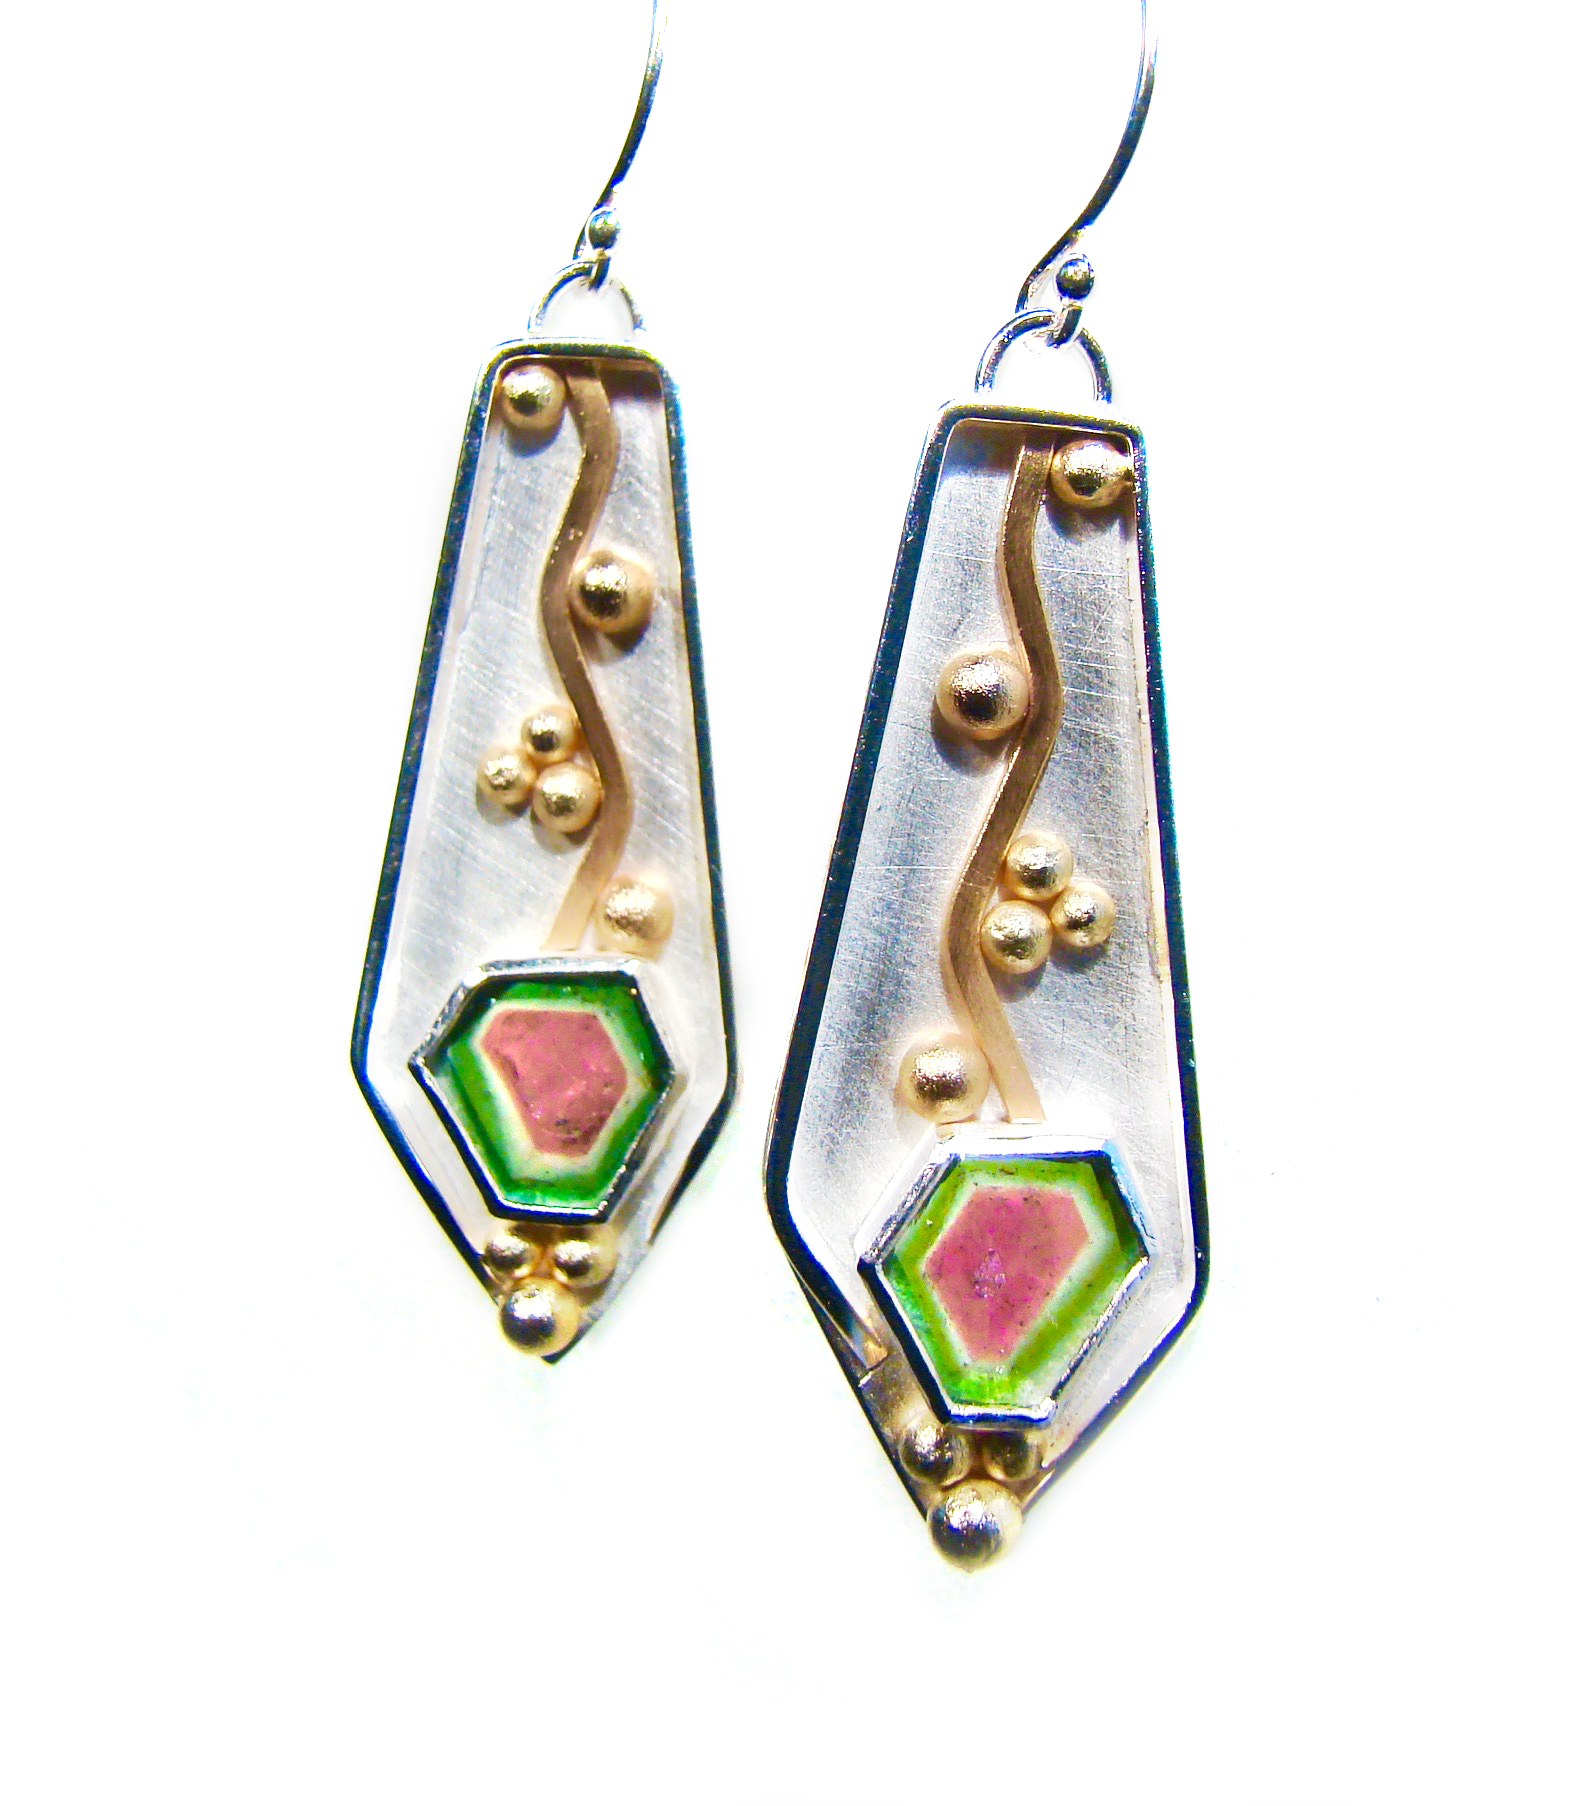 Watermelon Tourmaline Earrings #857.jpg